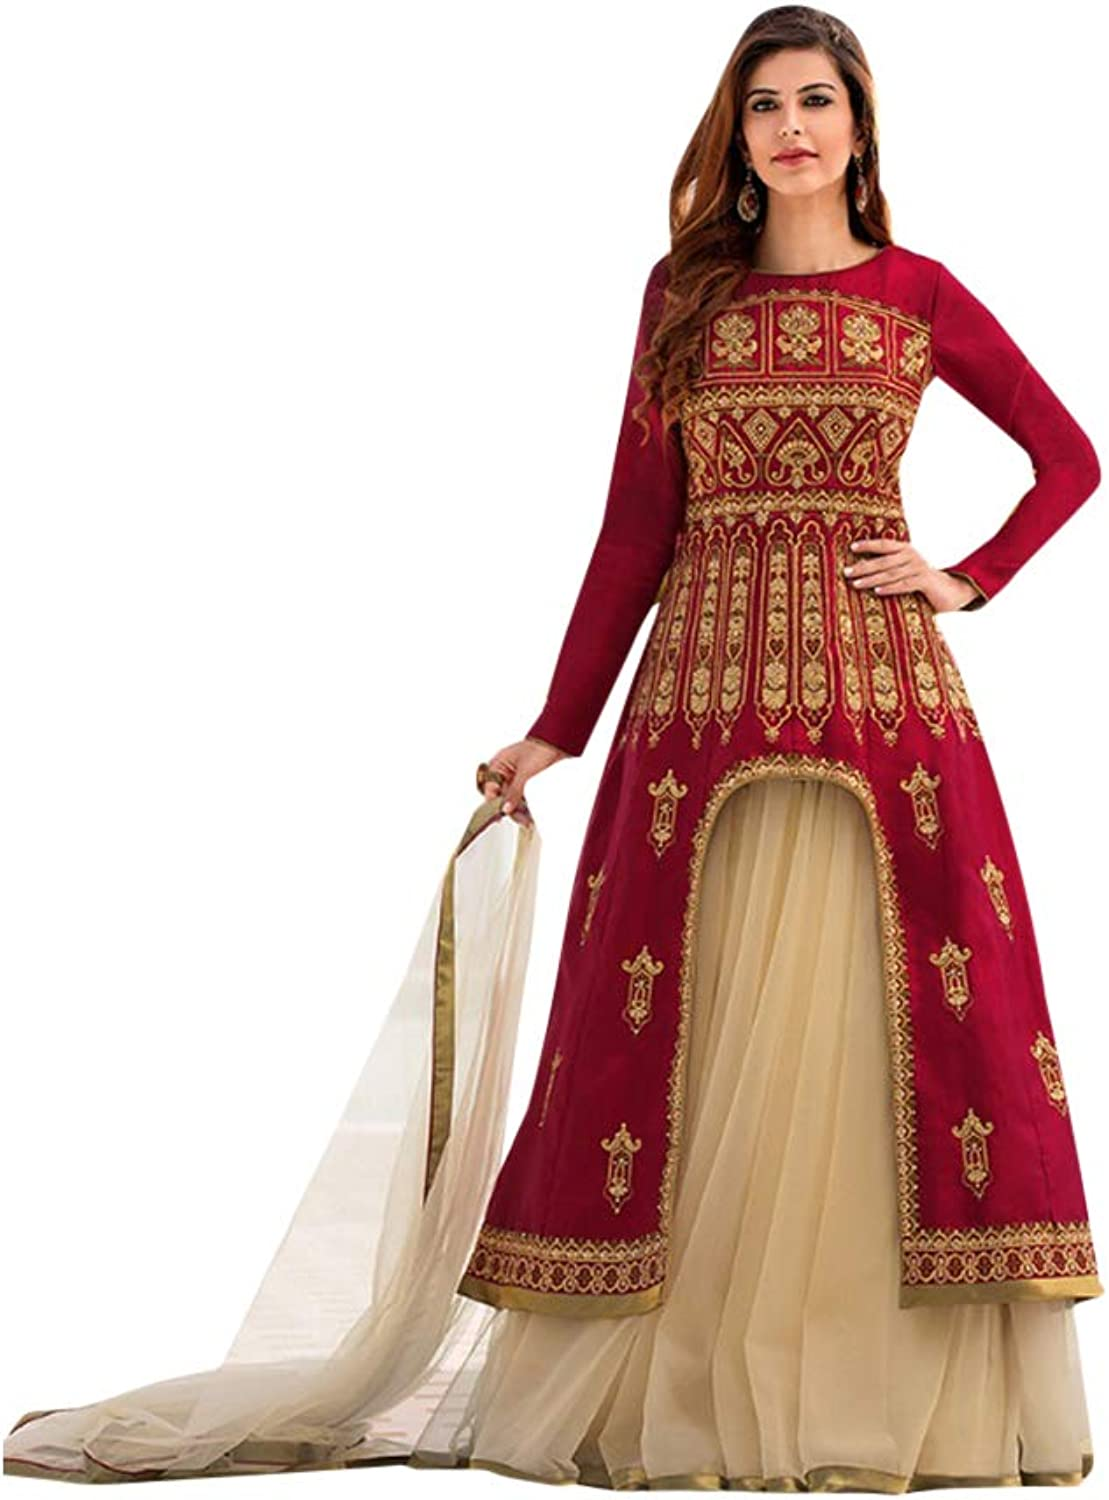 Designer Front Split Tafeta Silk Skirt style Anarkali Suit for Women Trendy Indian Party dress 7569